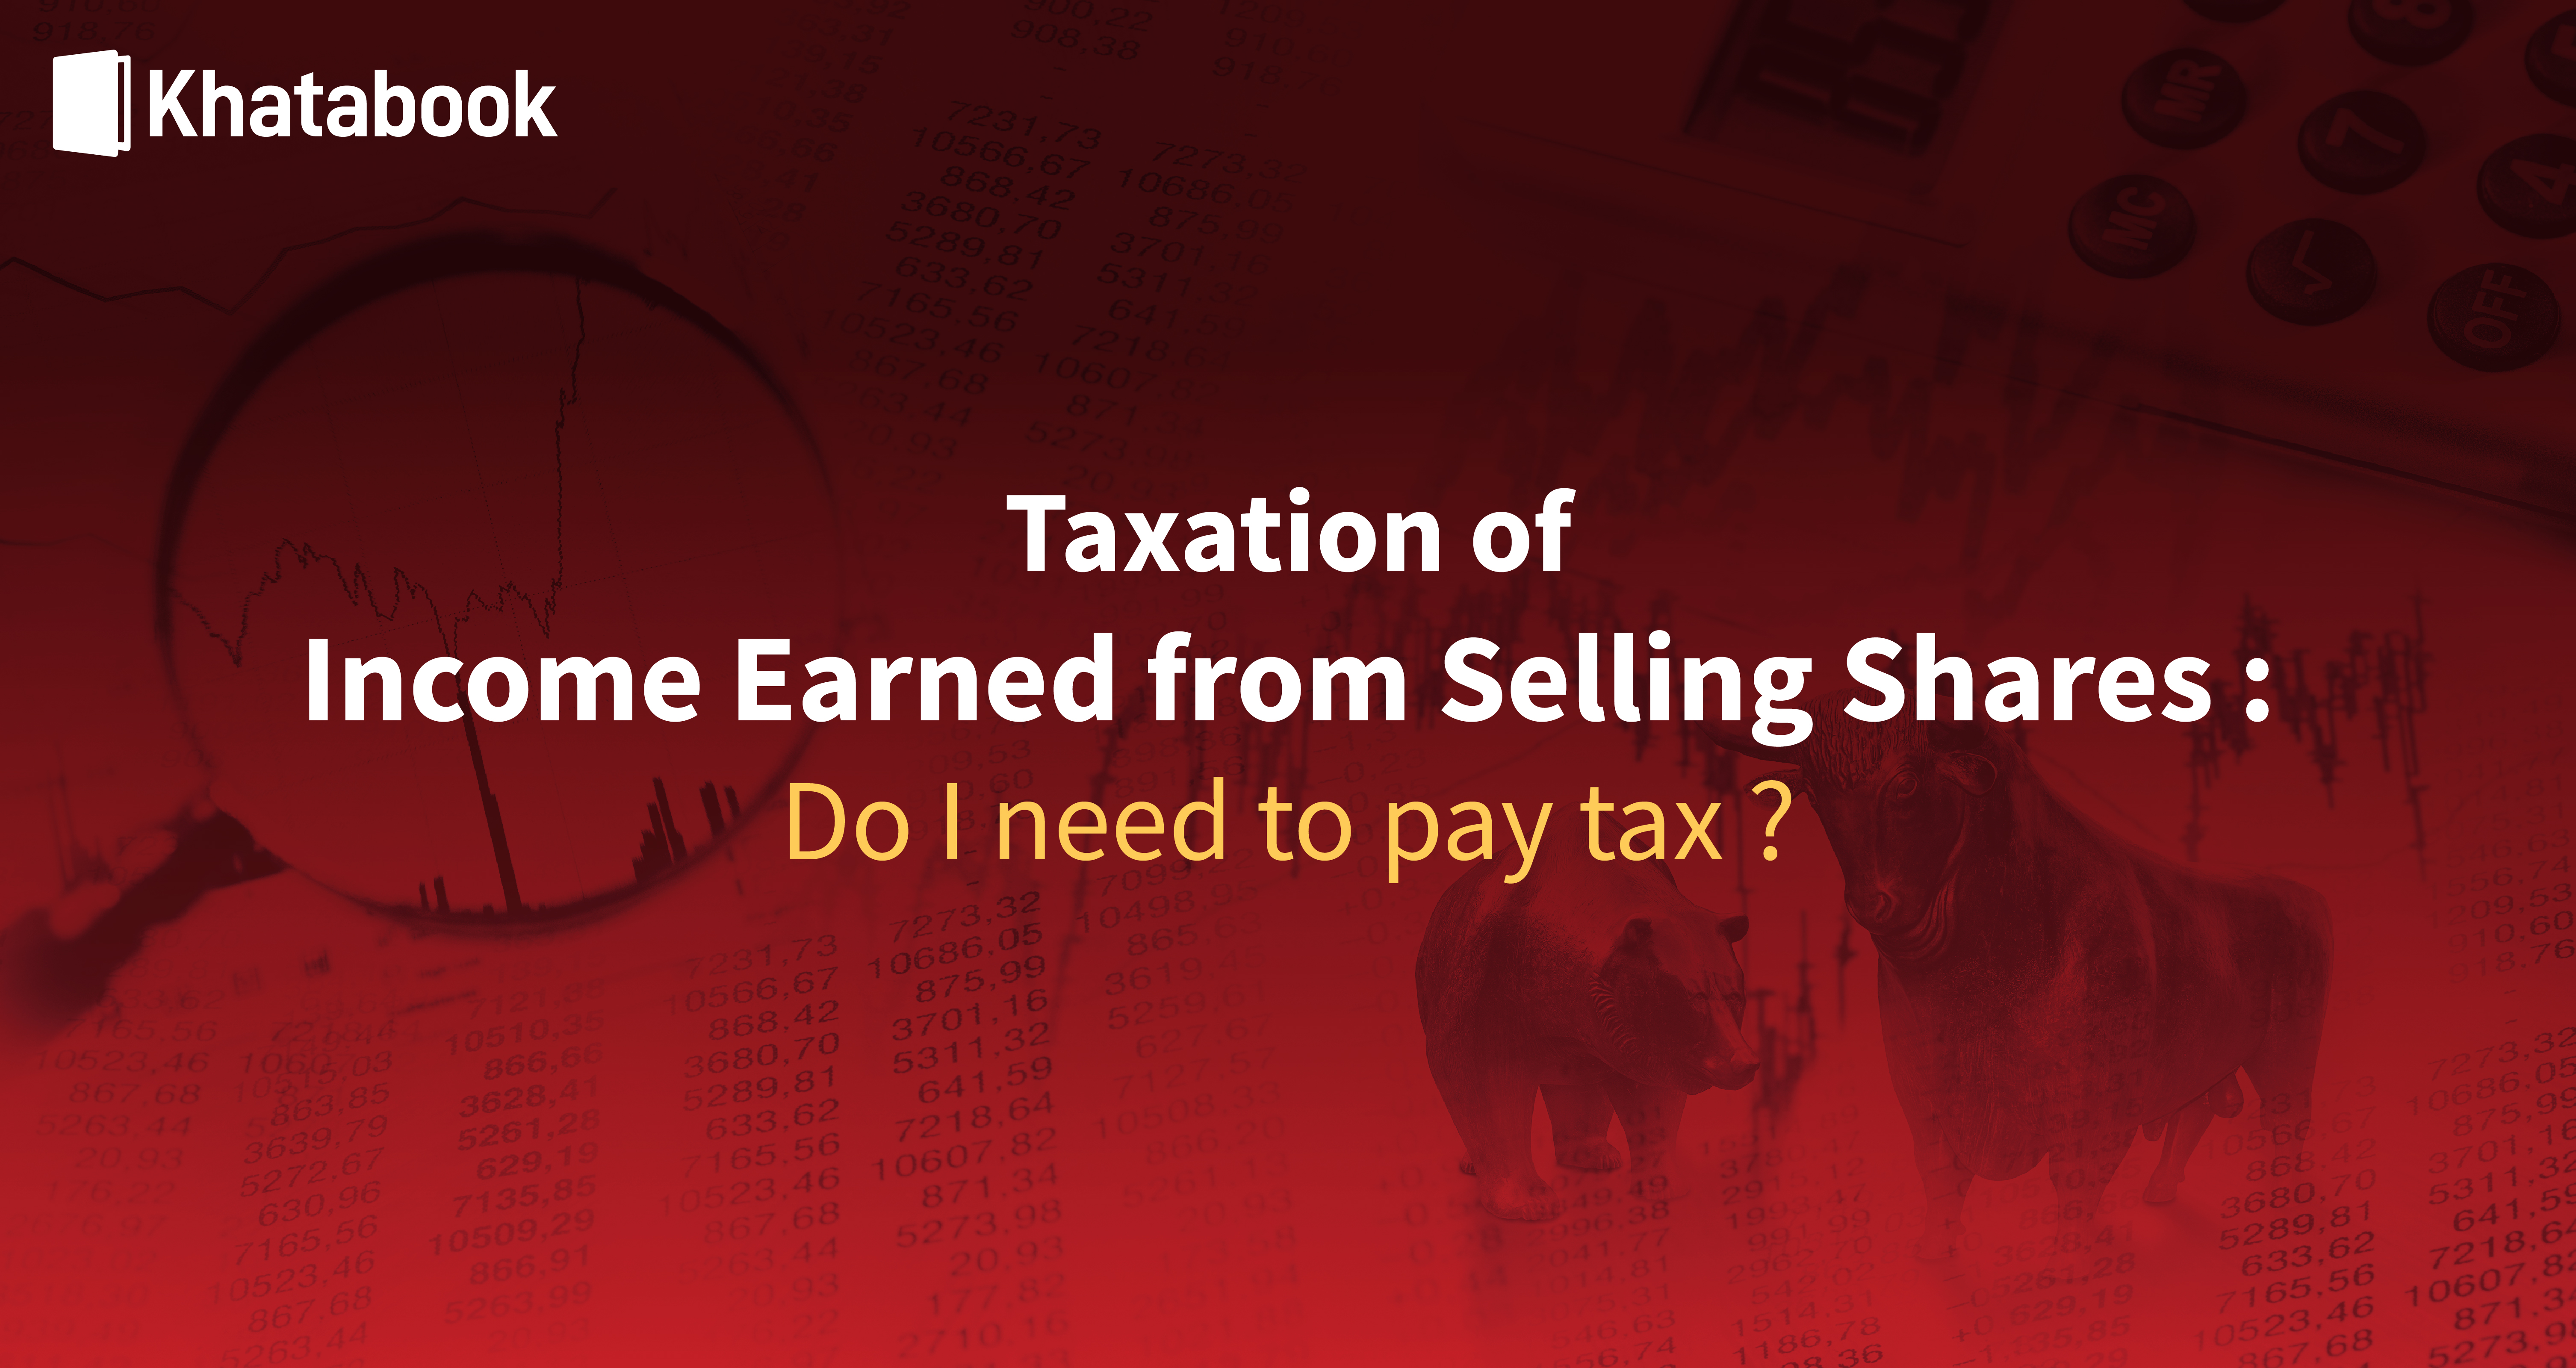 Know About Paying Taxation of Income Earned From Selling Shares